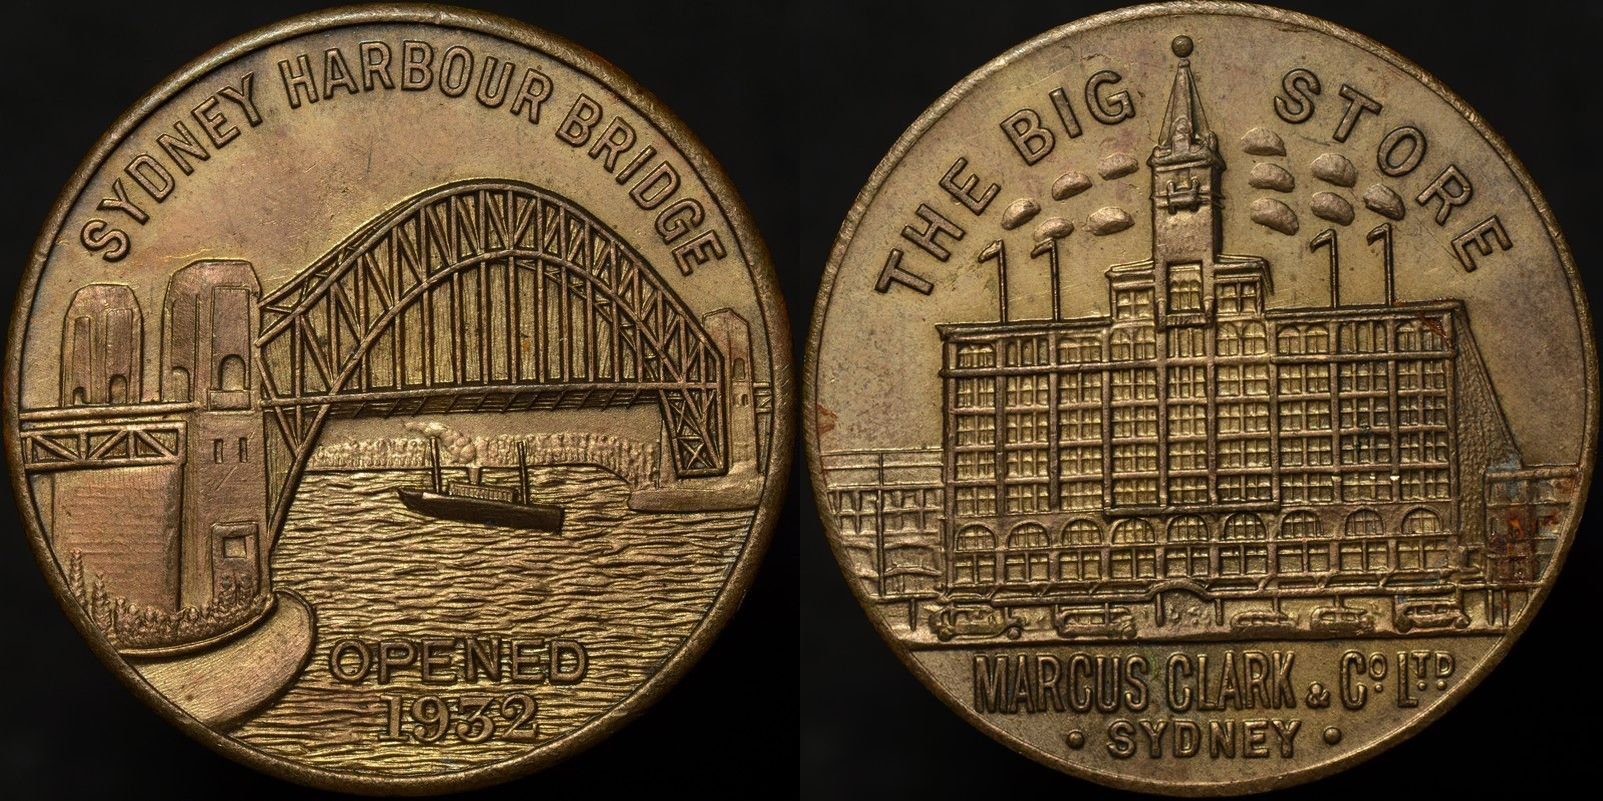 Sydney Harbour Bridge The Big Store Marcus Clark & Co Ltd Medal 1932/3